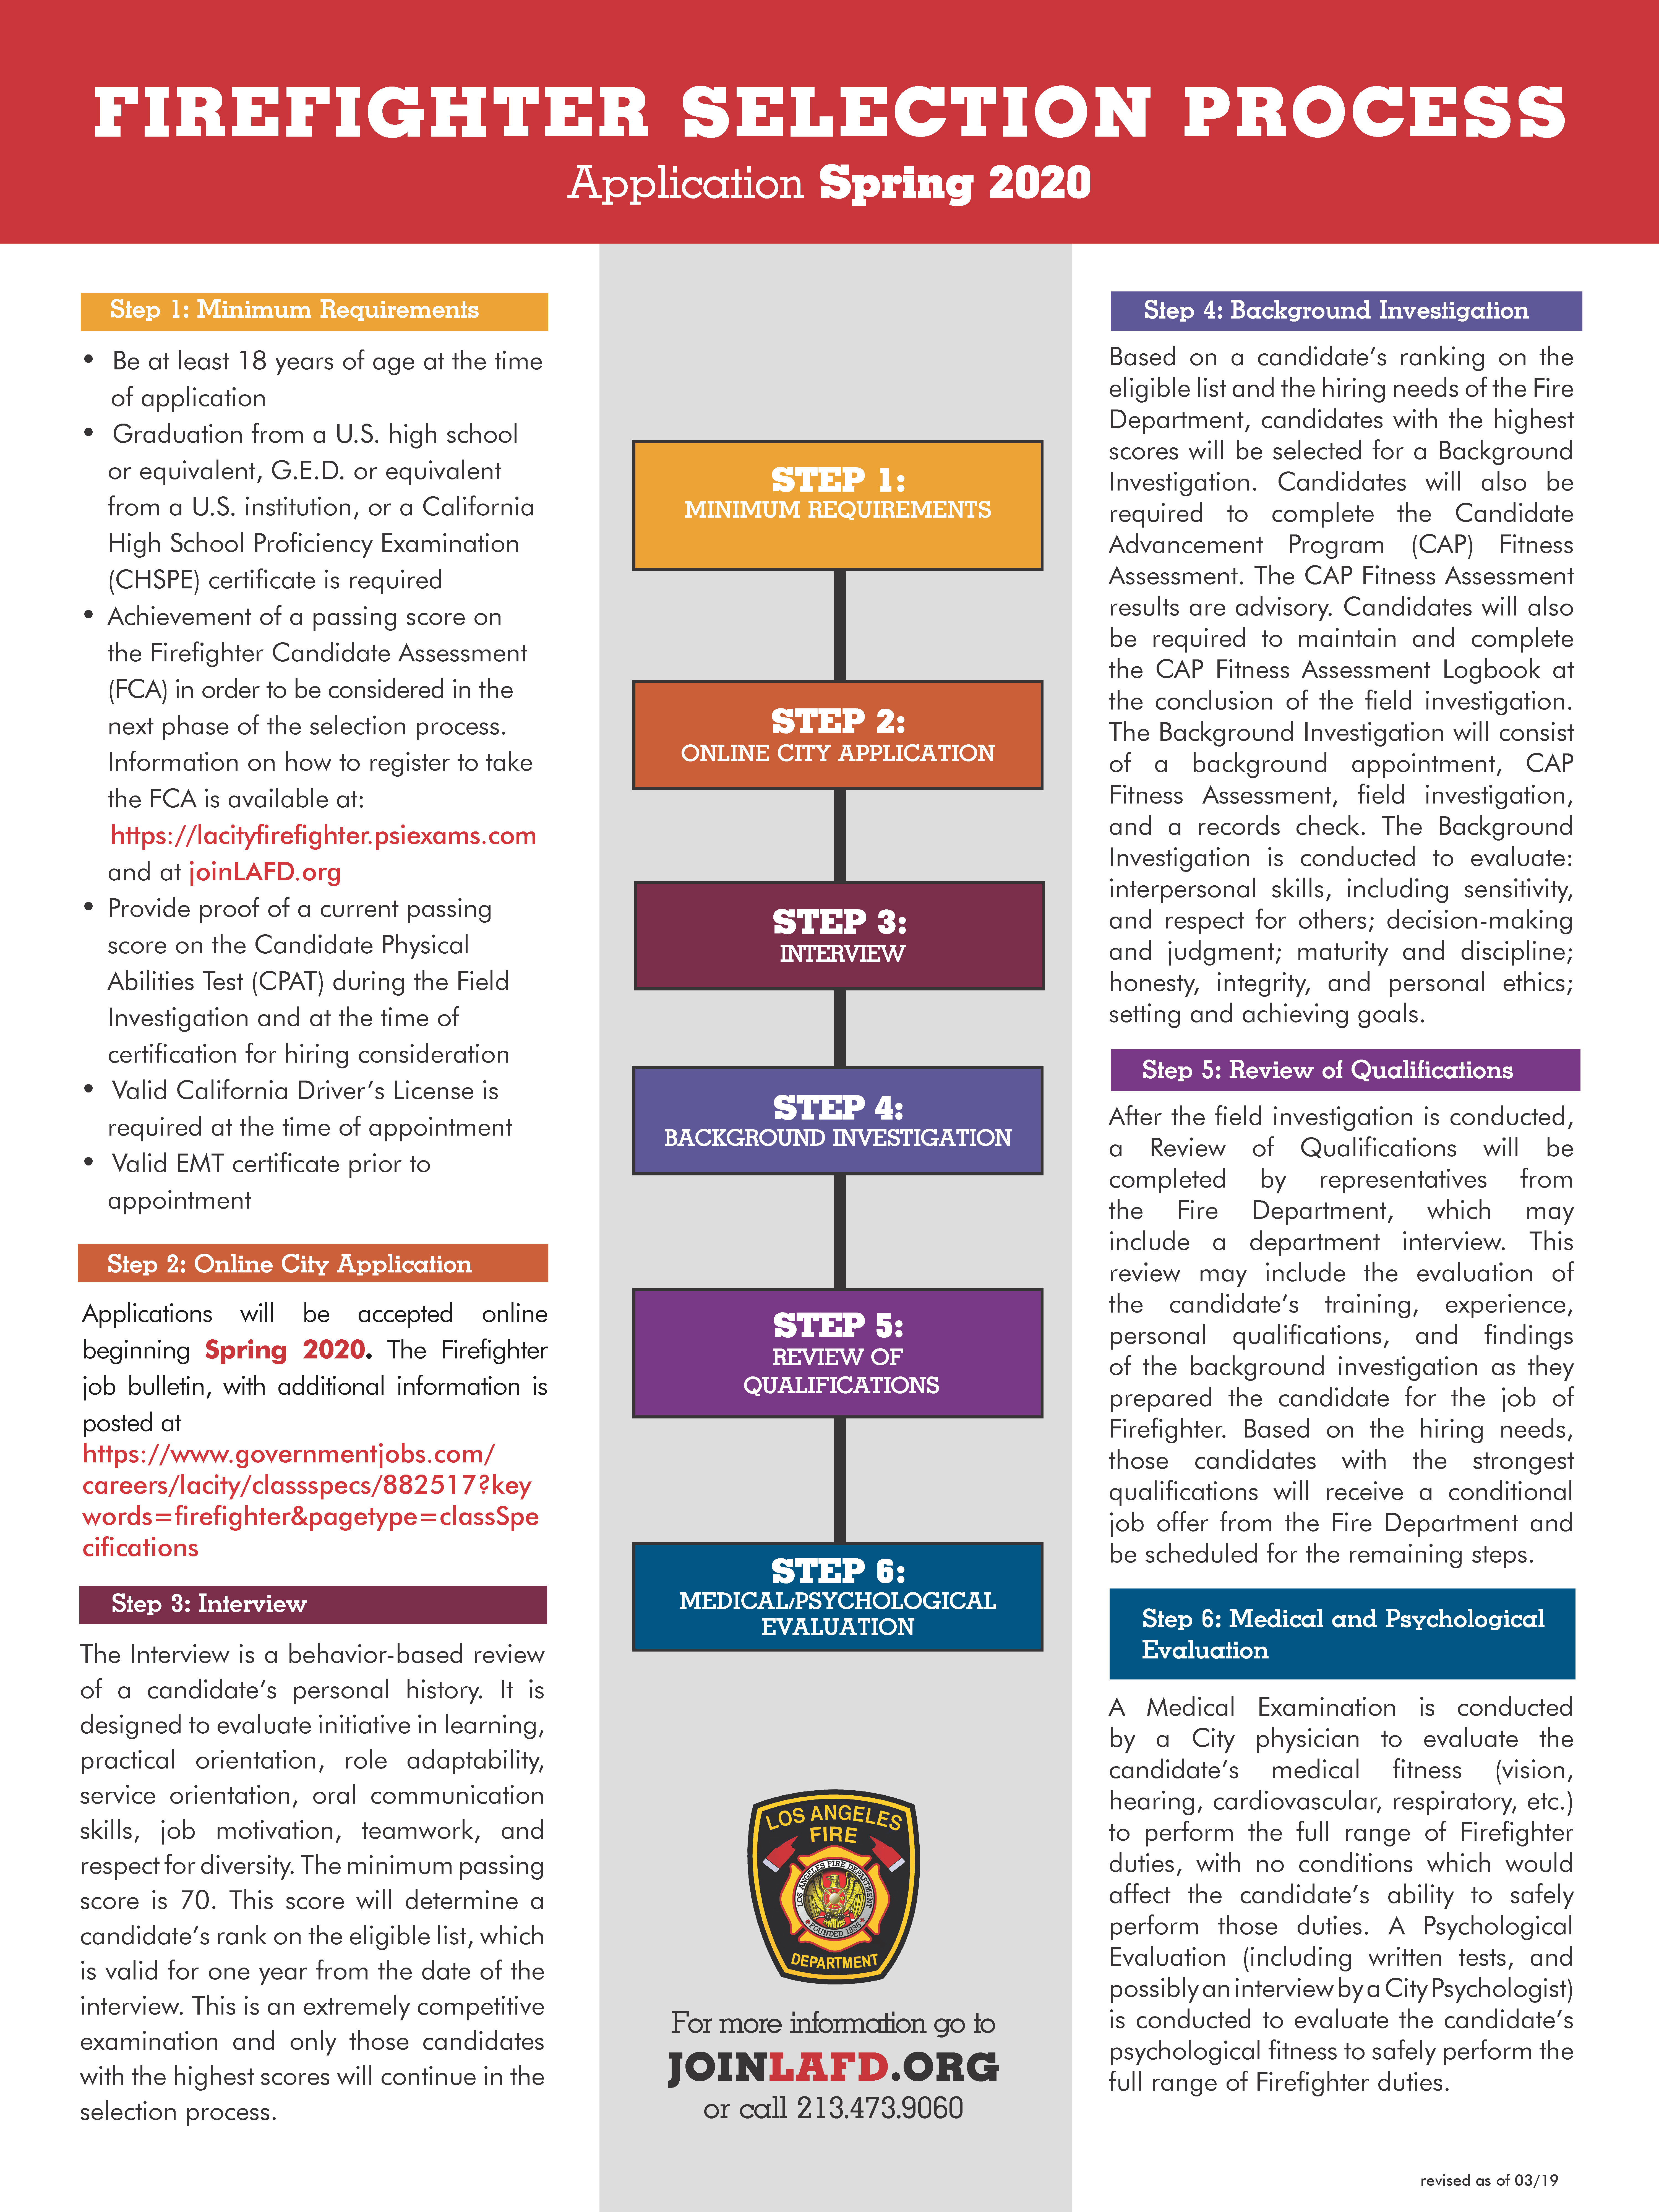 Hiring Process @ JoinLAFD: Los Angeles Fire Department